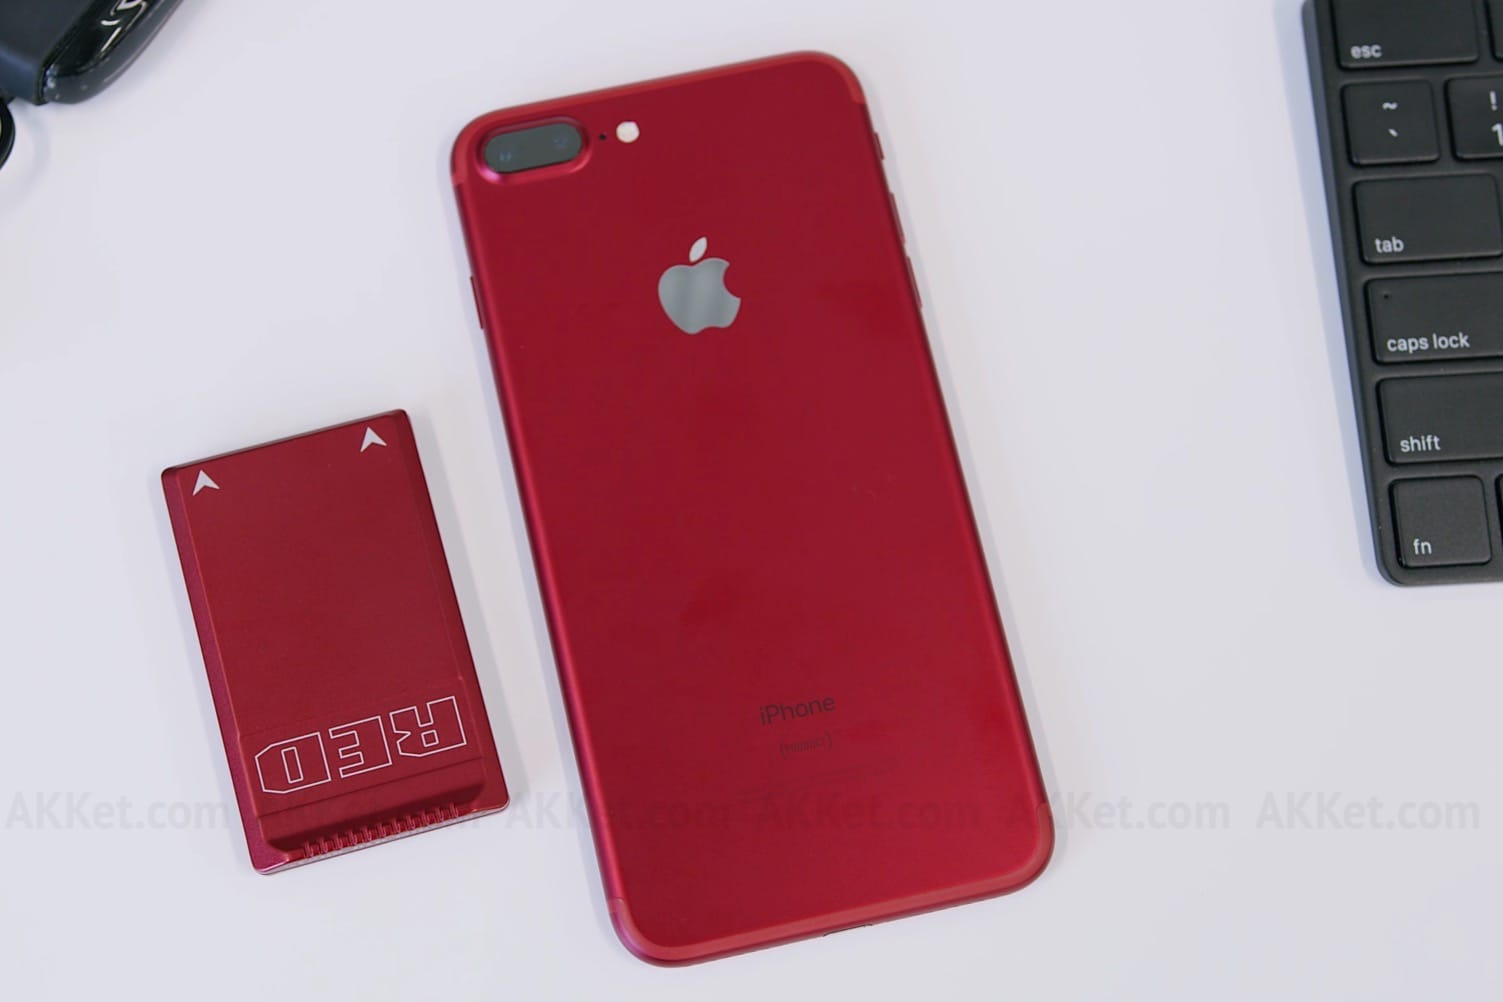 Apple iPhone 7 Plus (PRODUCT)RED Red unboxing 2